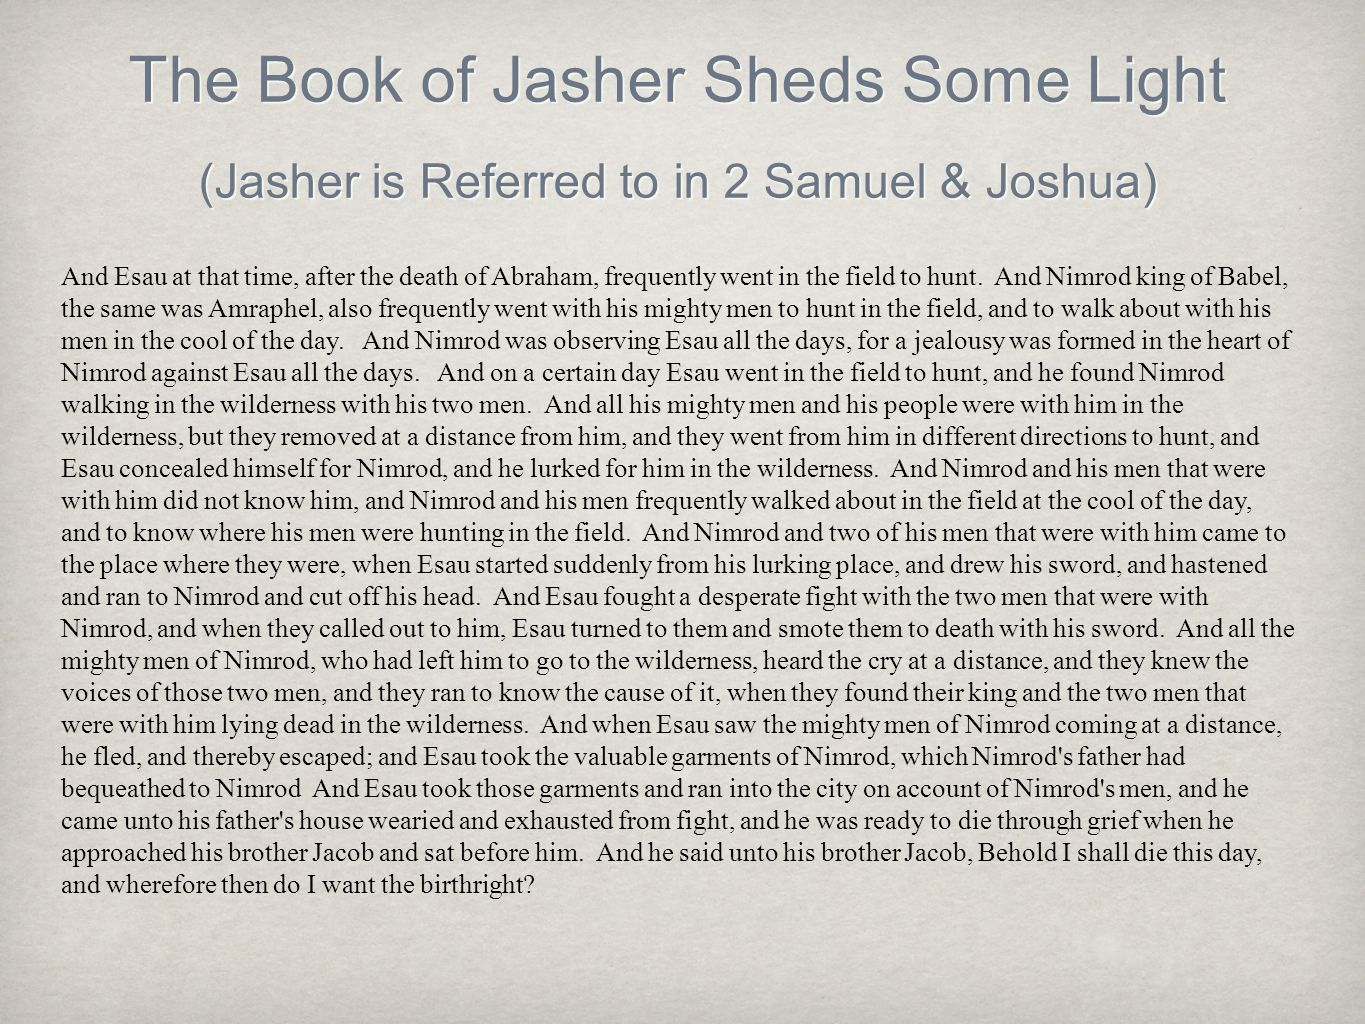 The Book of Jasher Sheds Some Light (Jasher is Referred to in 2 Samuel & Joshua) And Esau at that time, after the death of Abraham, frequently went in the field to hunt.